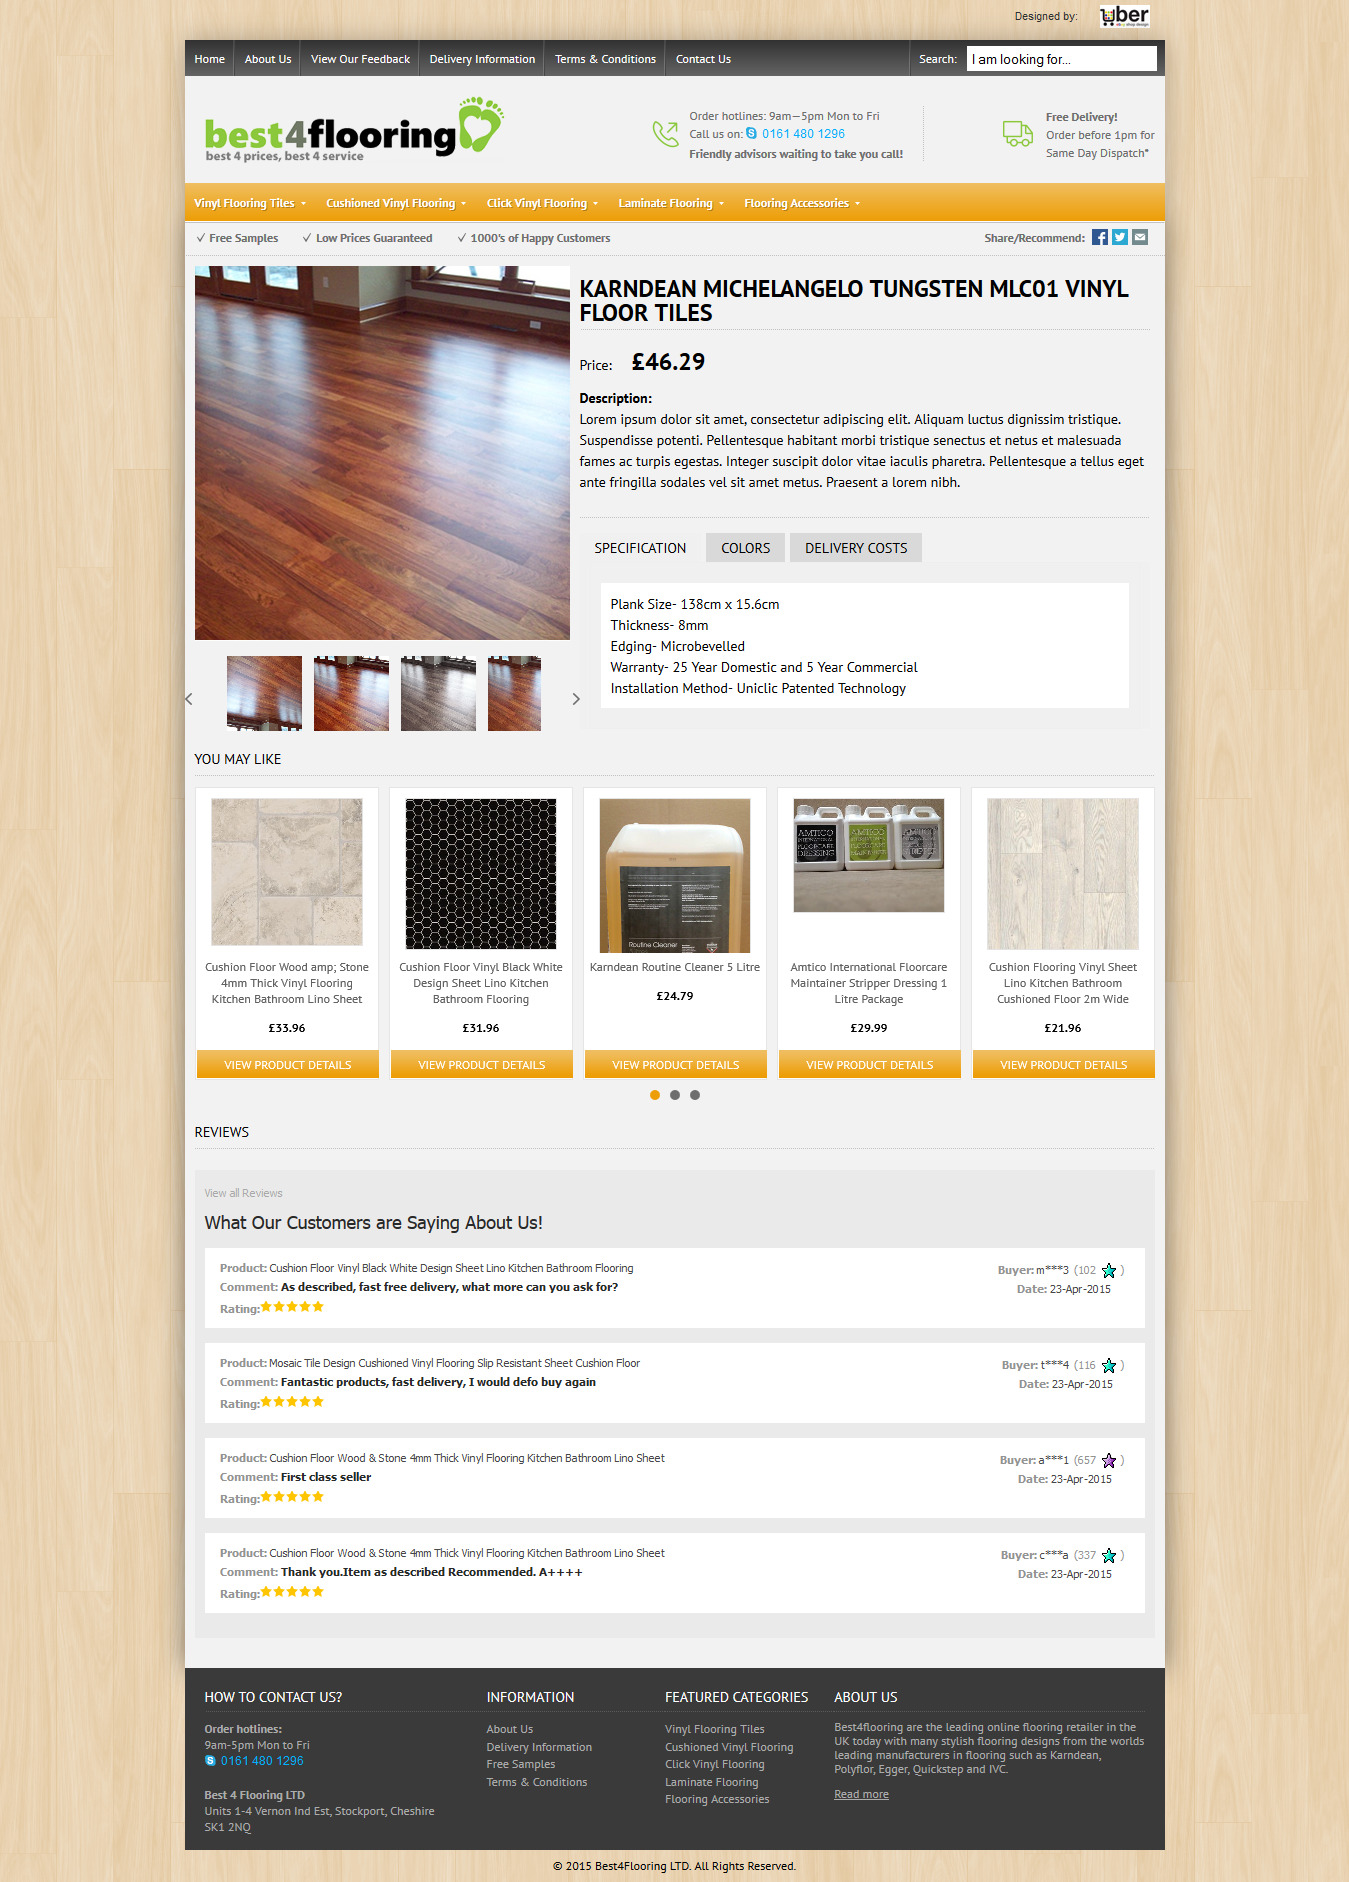 Bestflooring Ebay Shop Design Project - Ebay item template